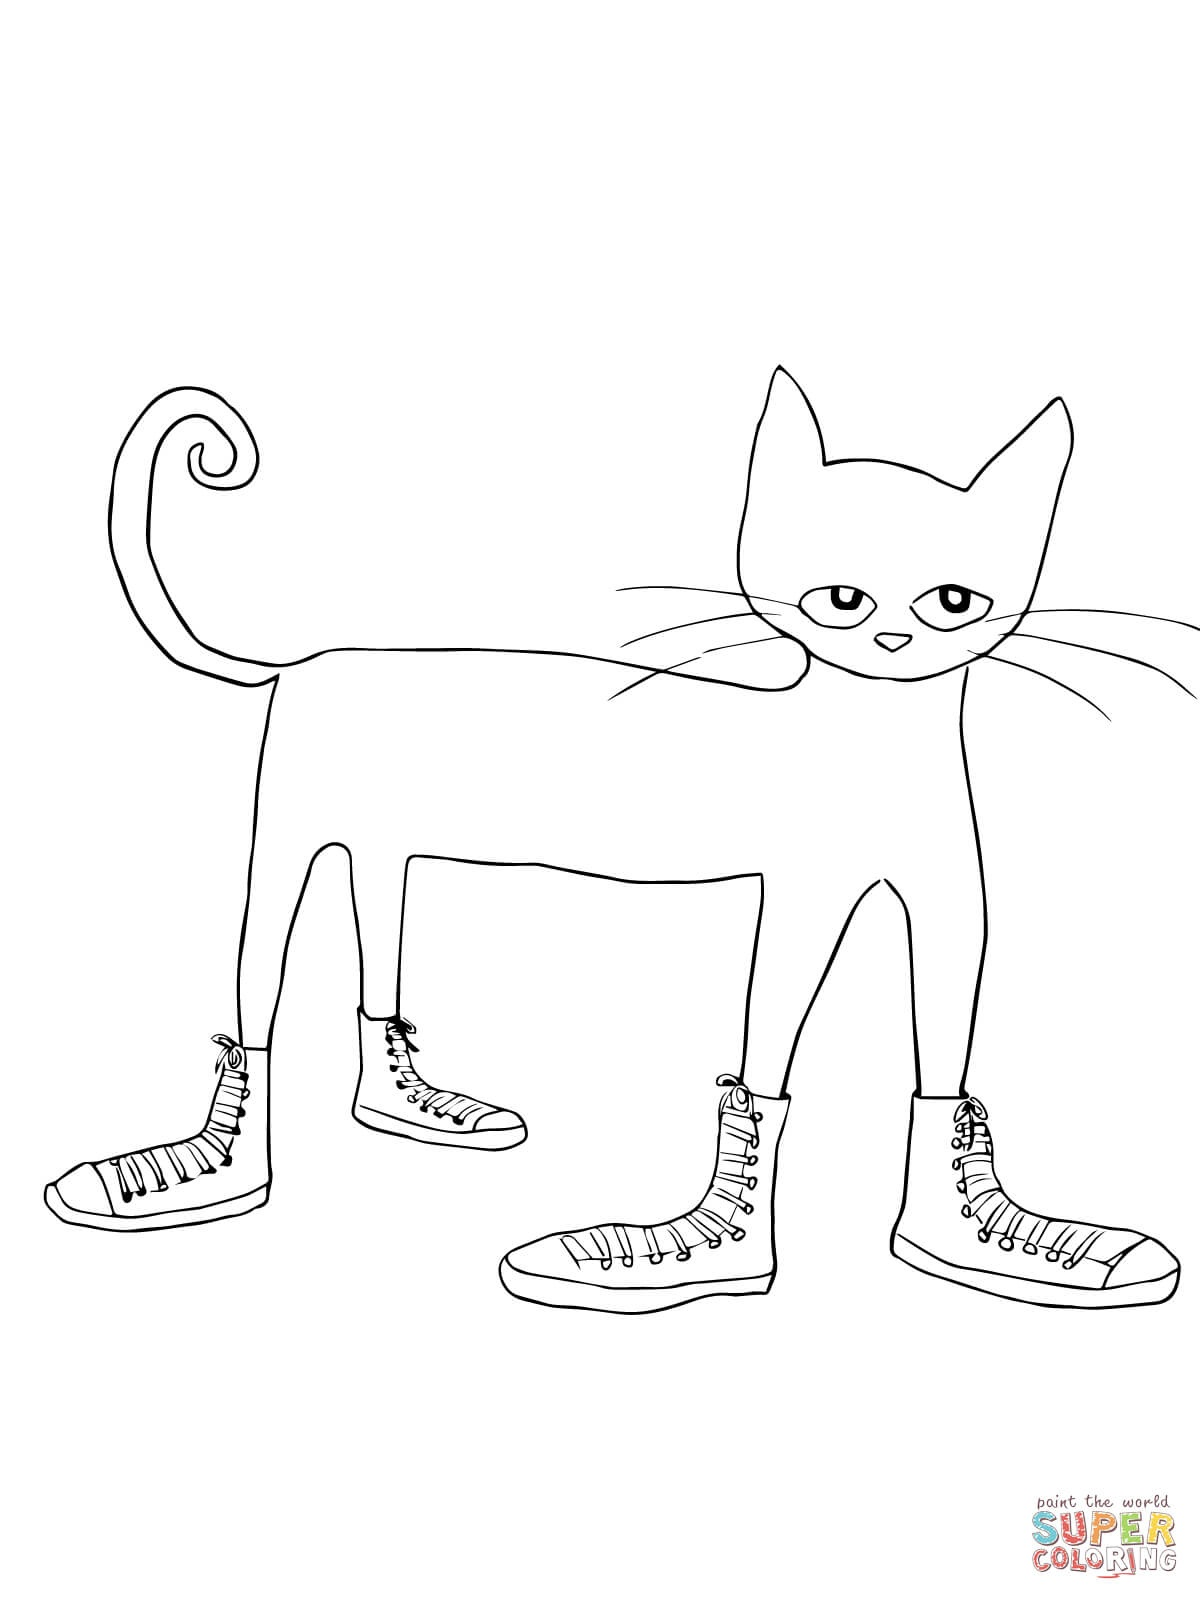 Pete The Cat Coloring Pages | Free Coloring Pages - Cat Coloring Pages Free Printable